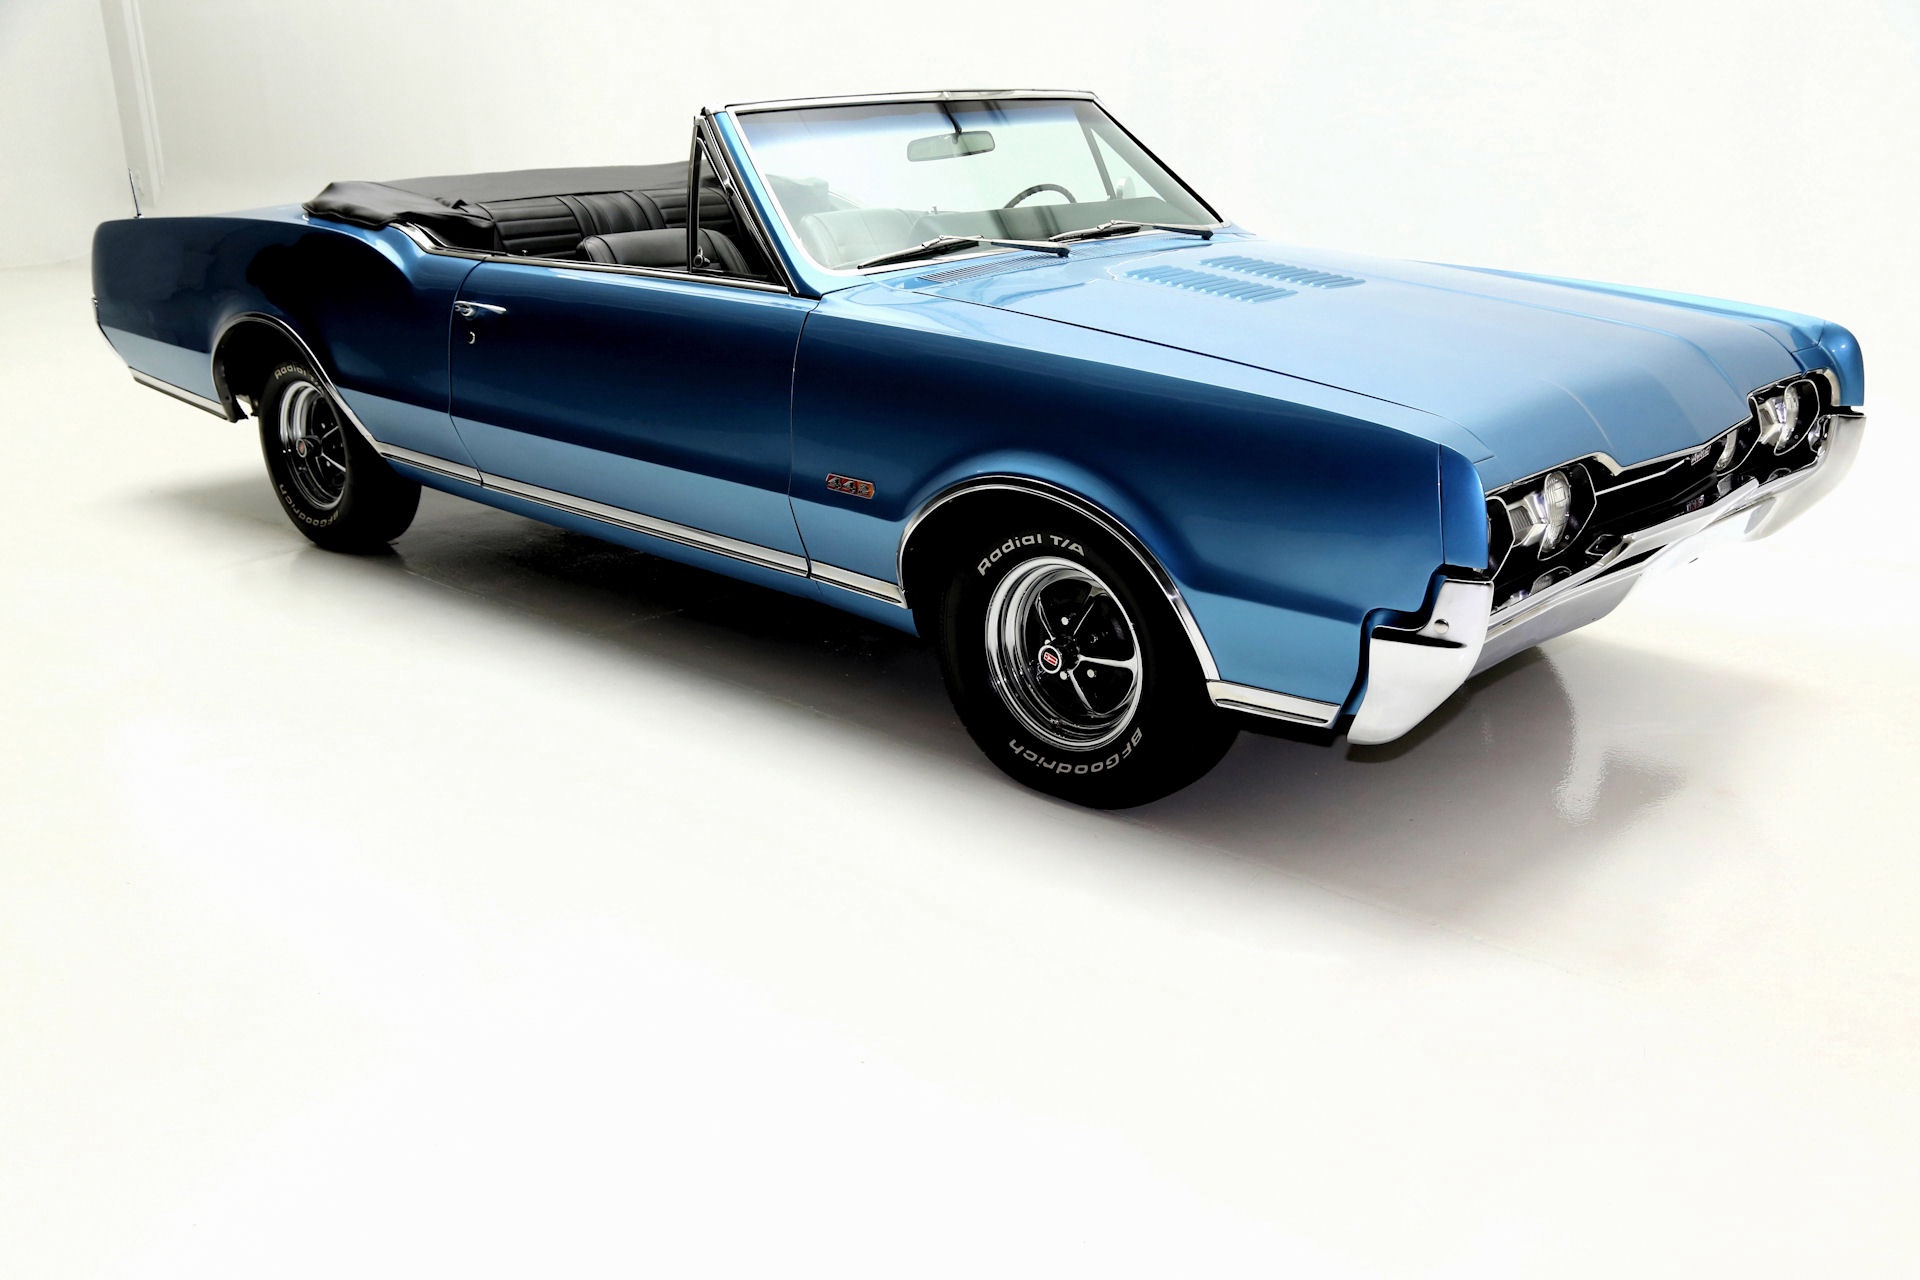 1967 Oldsmobile 442 Convertible Blue 400 4 Speed Rare